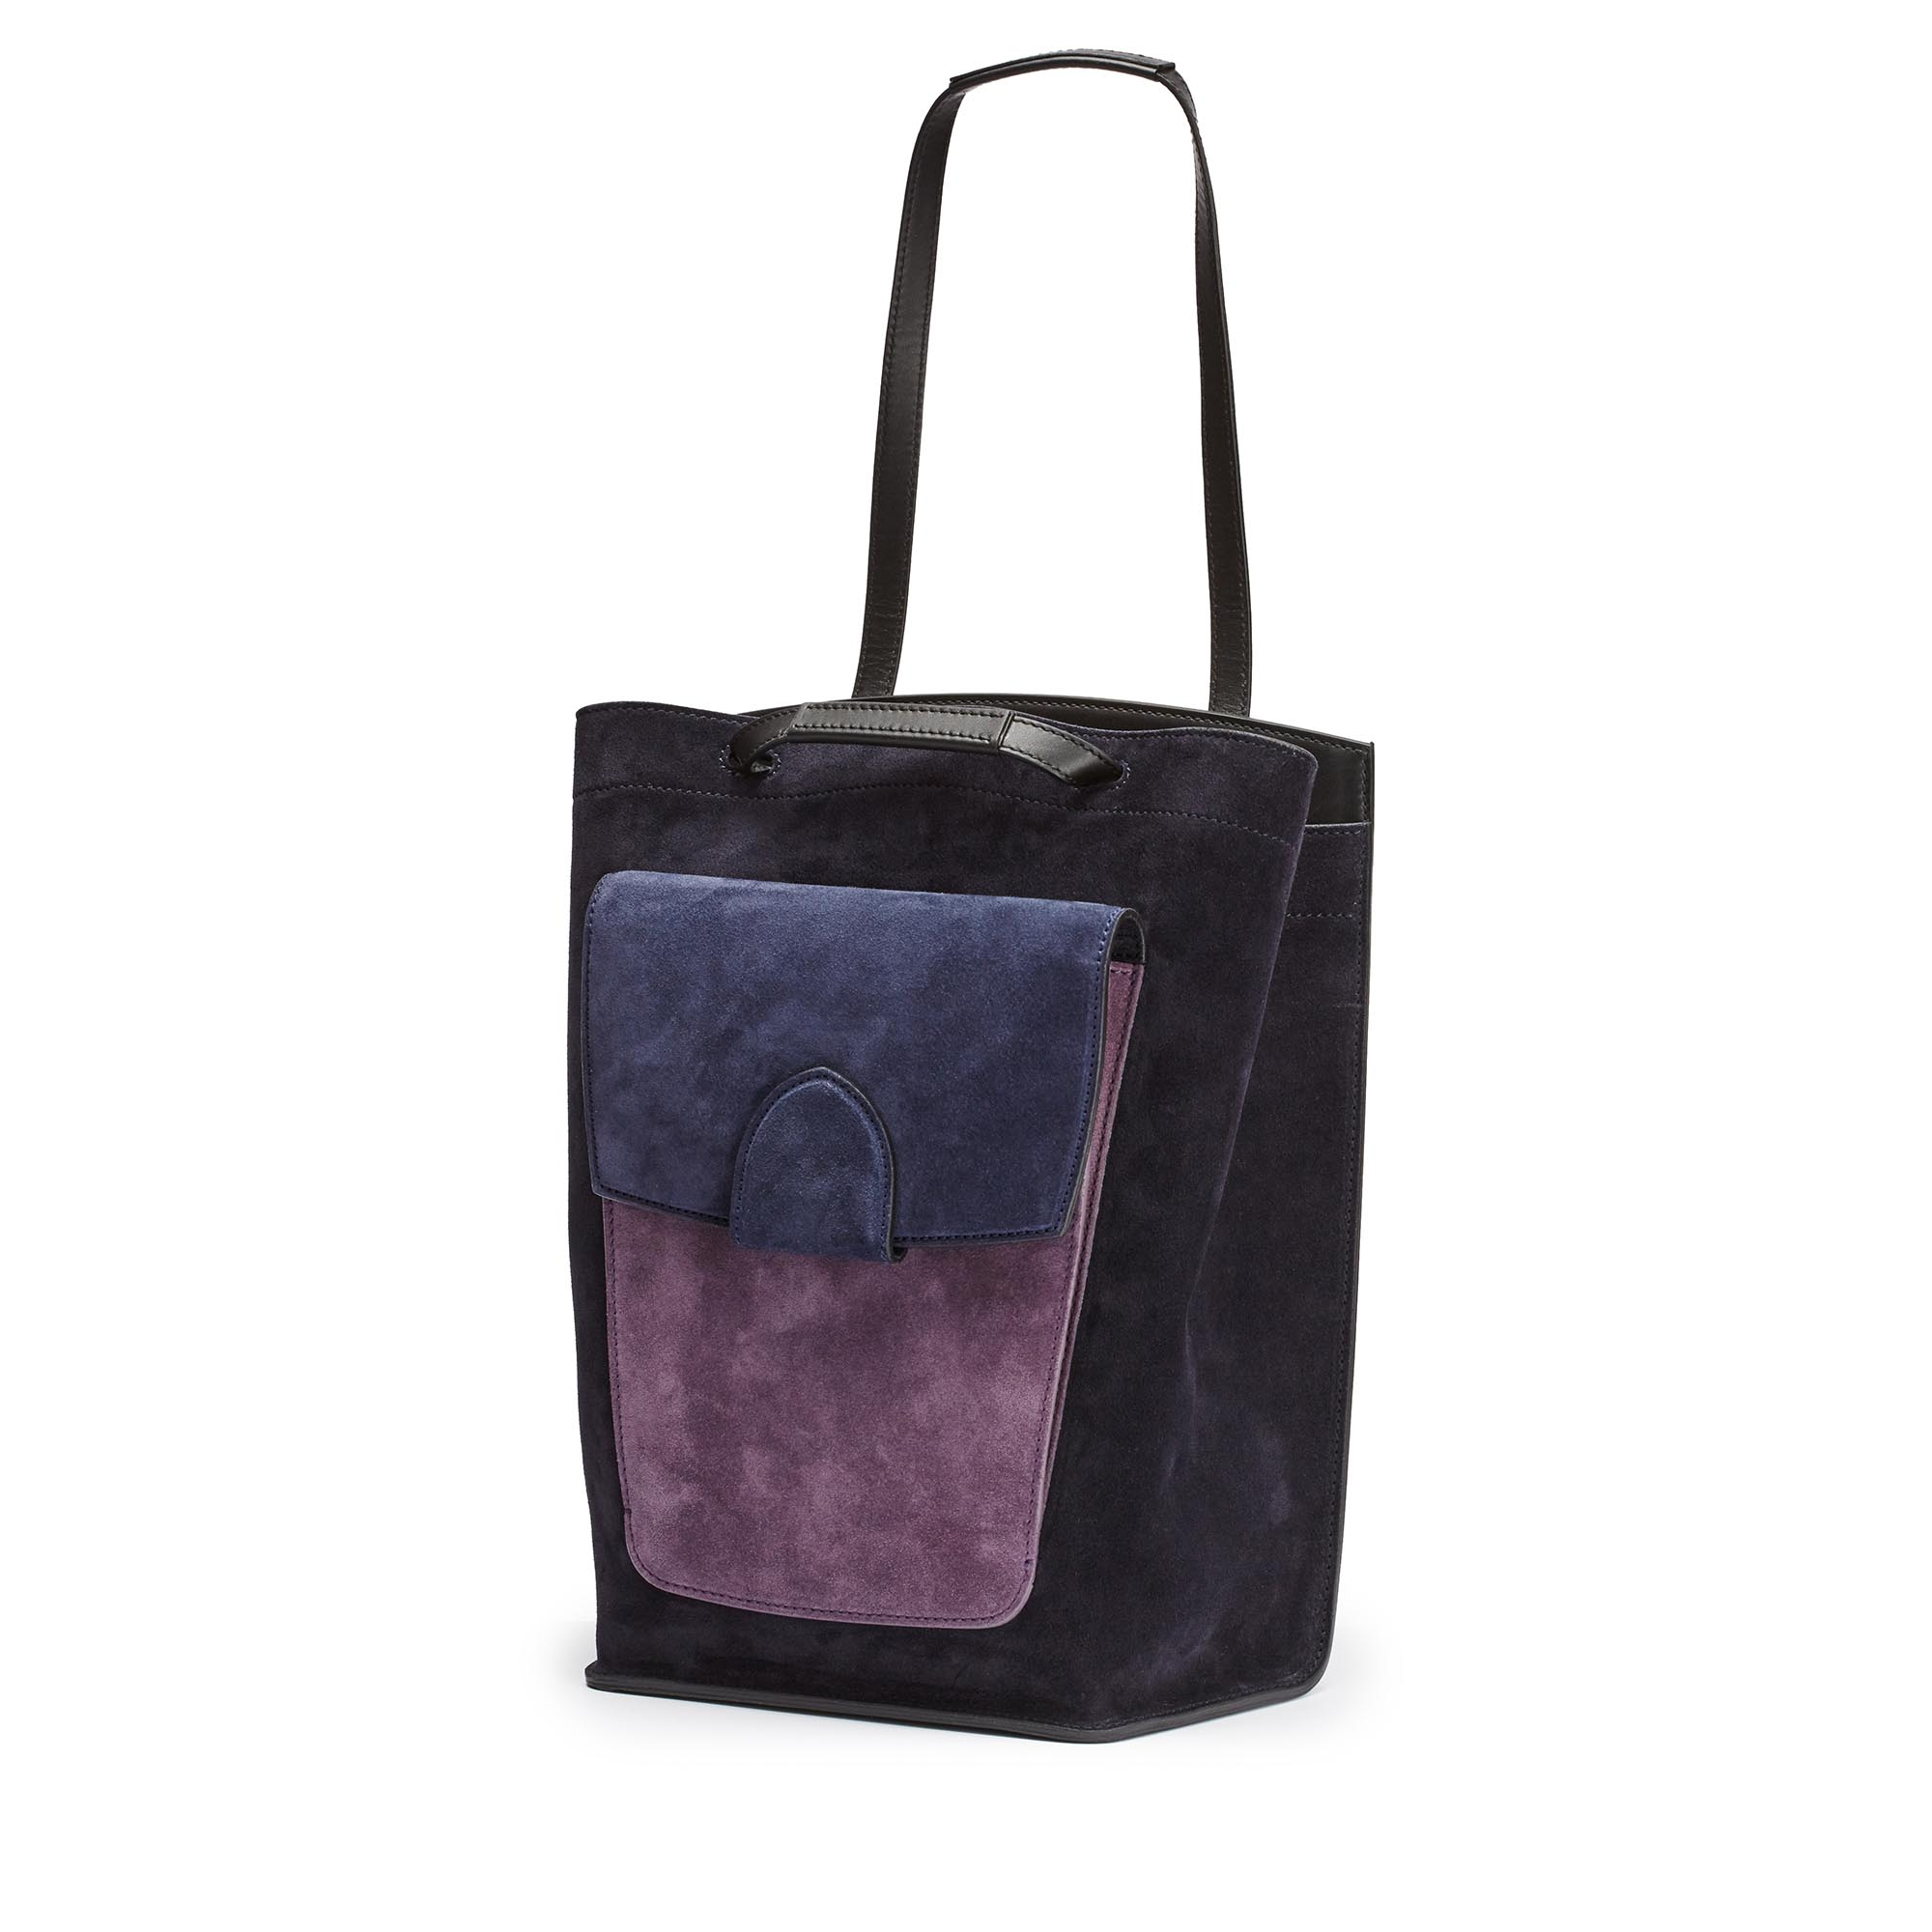 Arizona-black-navy-purple-suede-bag-Bertoni-1949_02